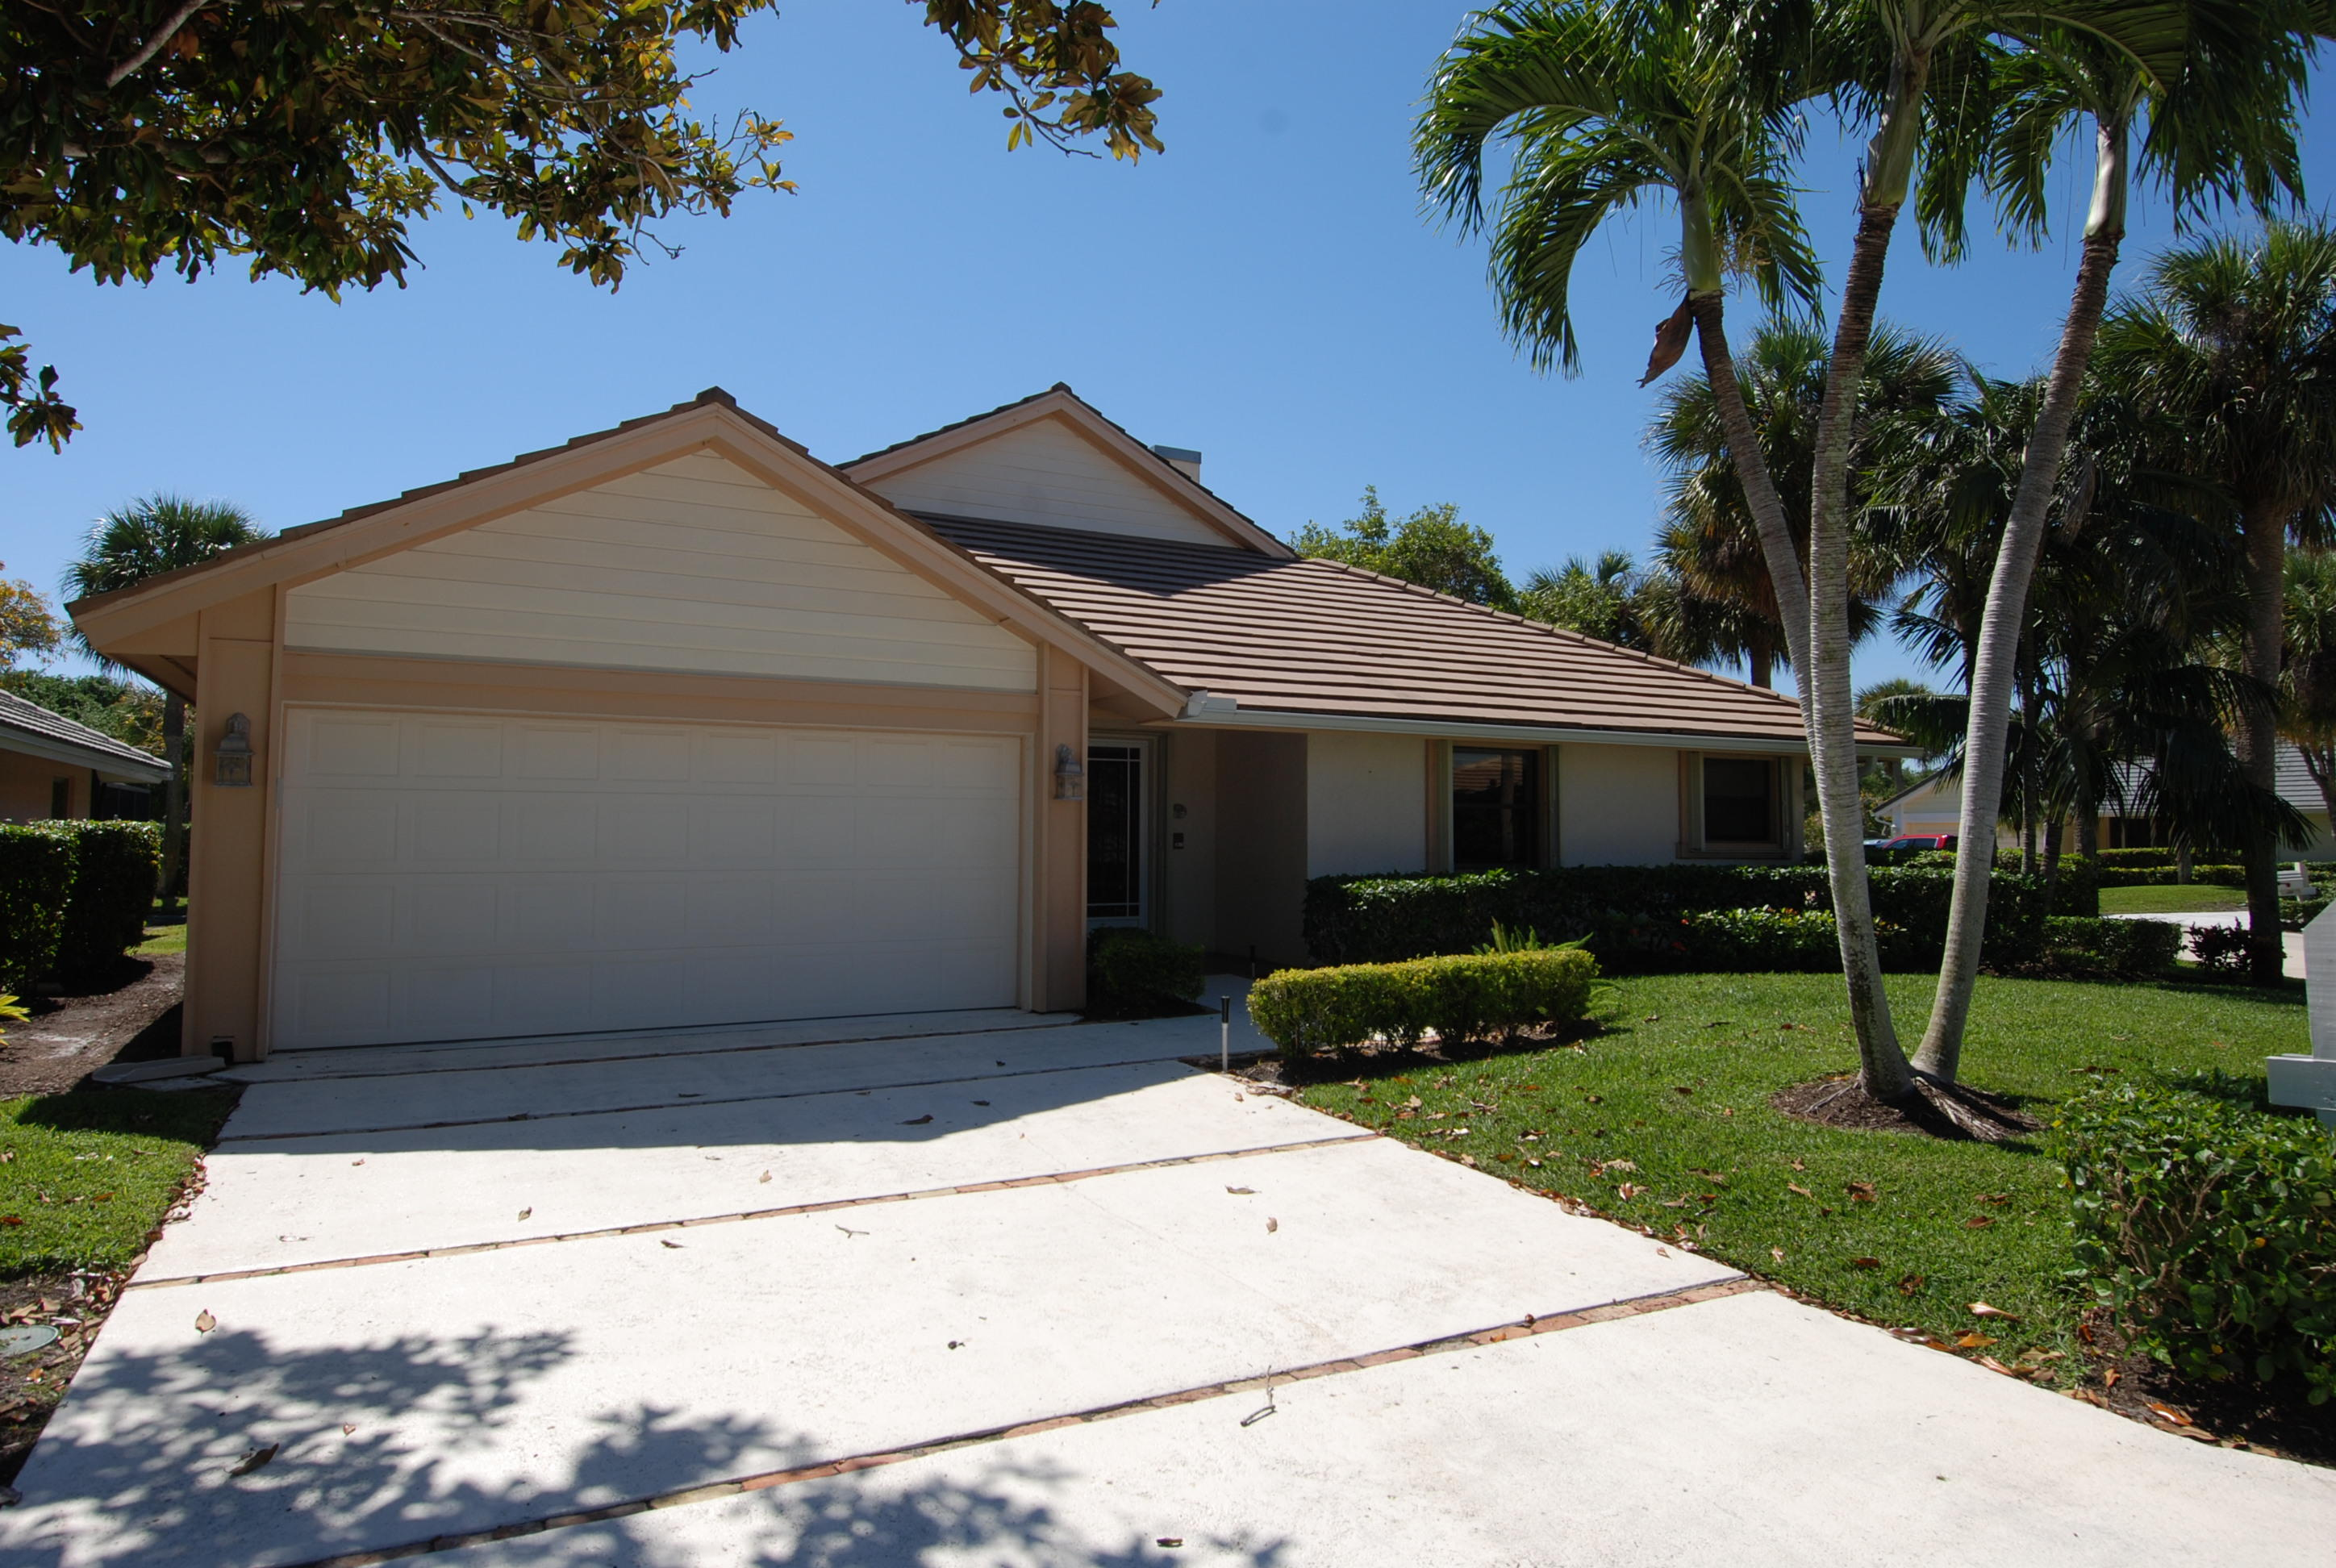 New Home for sale at 16968 Freshwind Circle in Jupiter